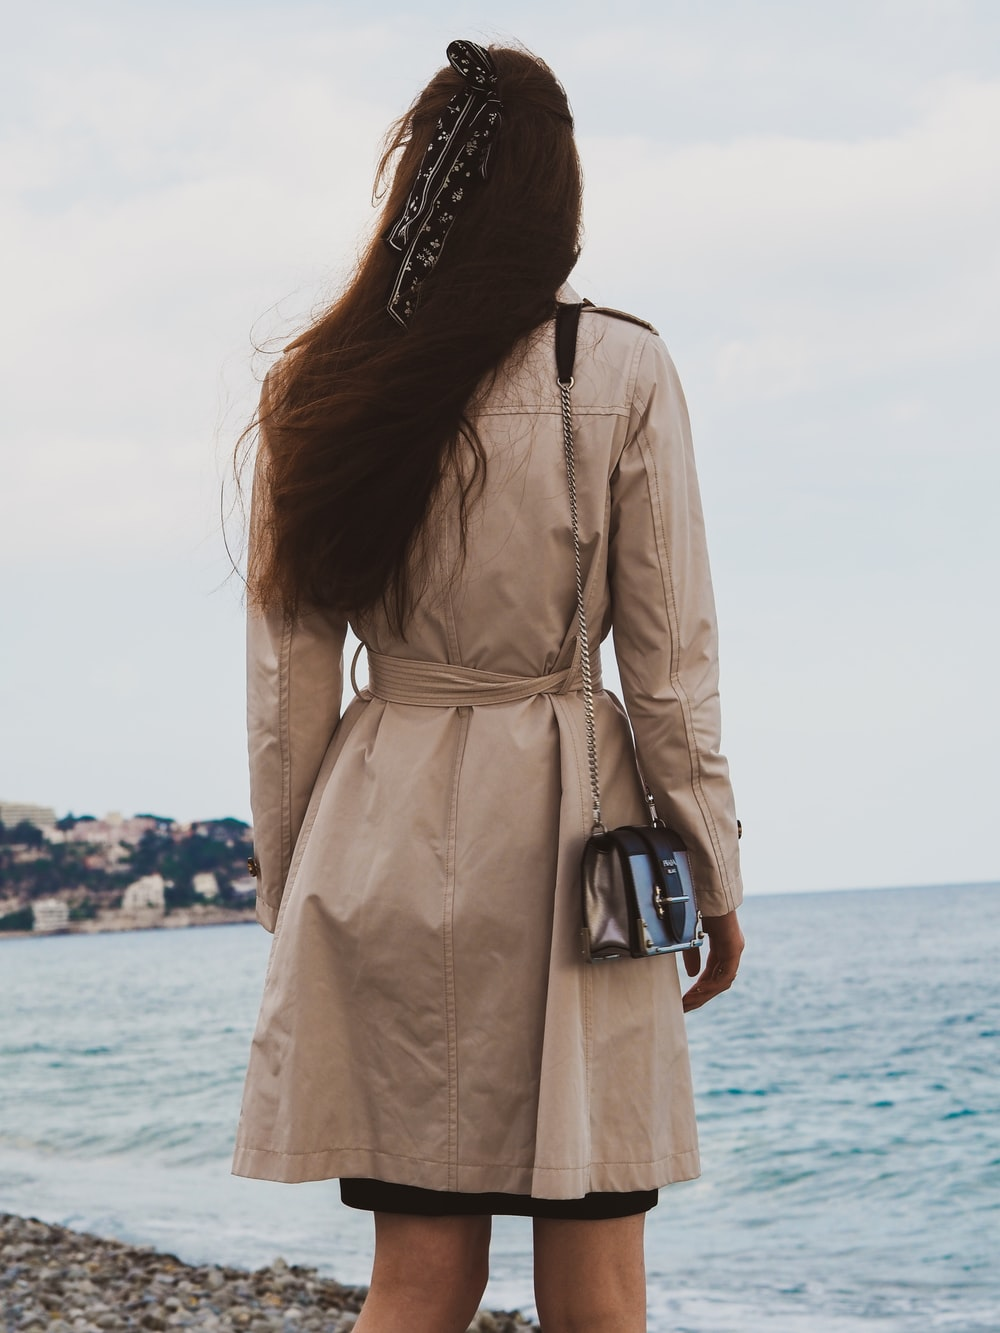 woman in brown coat standing near sea during daytime